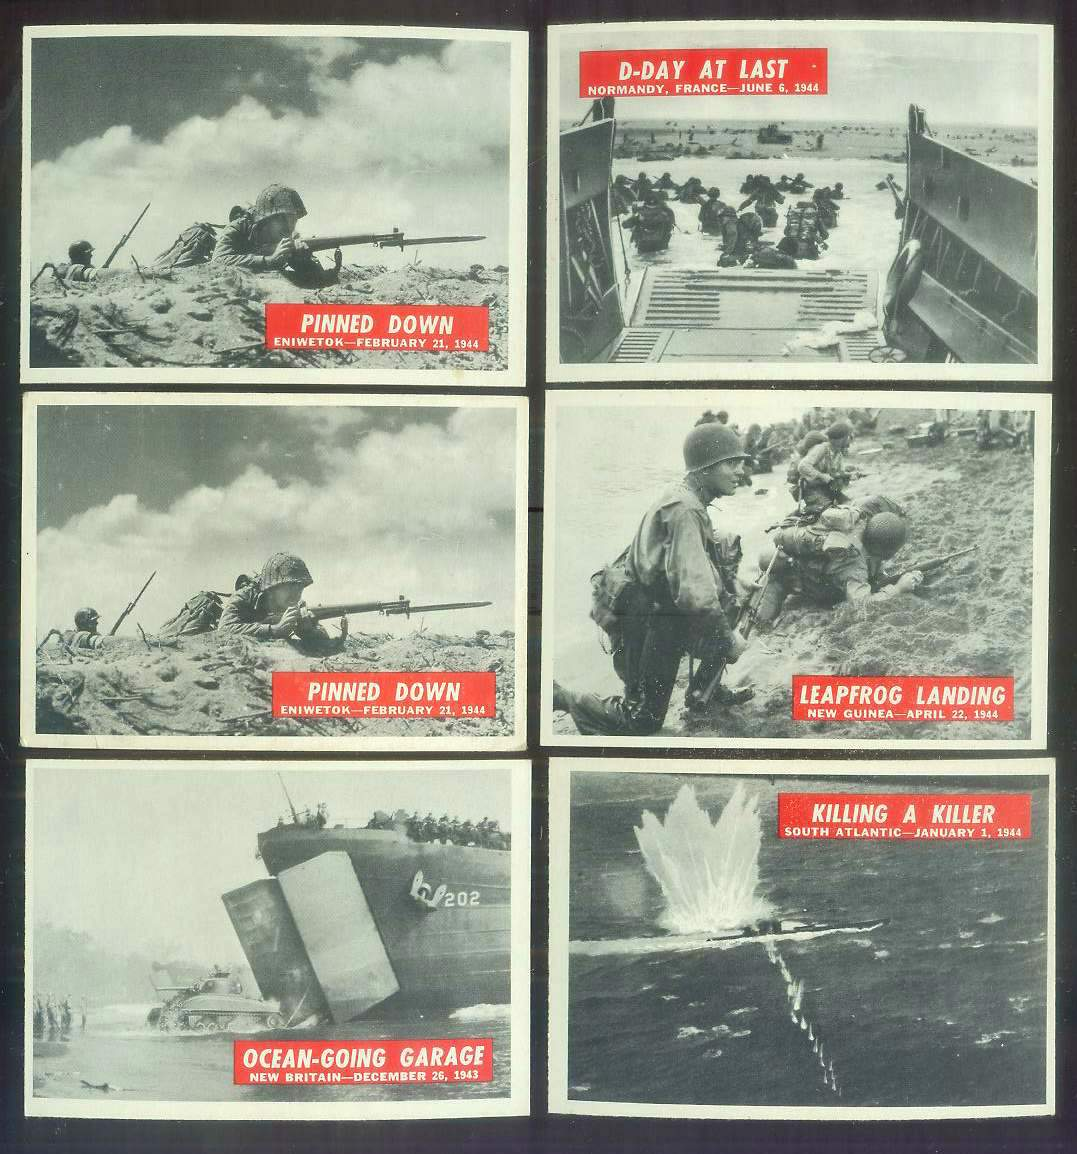 1965 Philadelphia WAR BULLETIN #35 'Ocean-Going Garage' n cards value